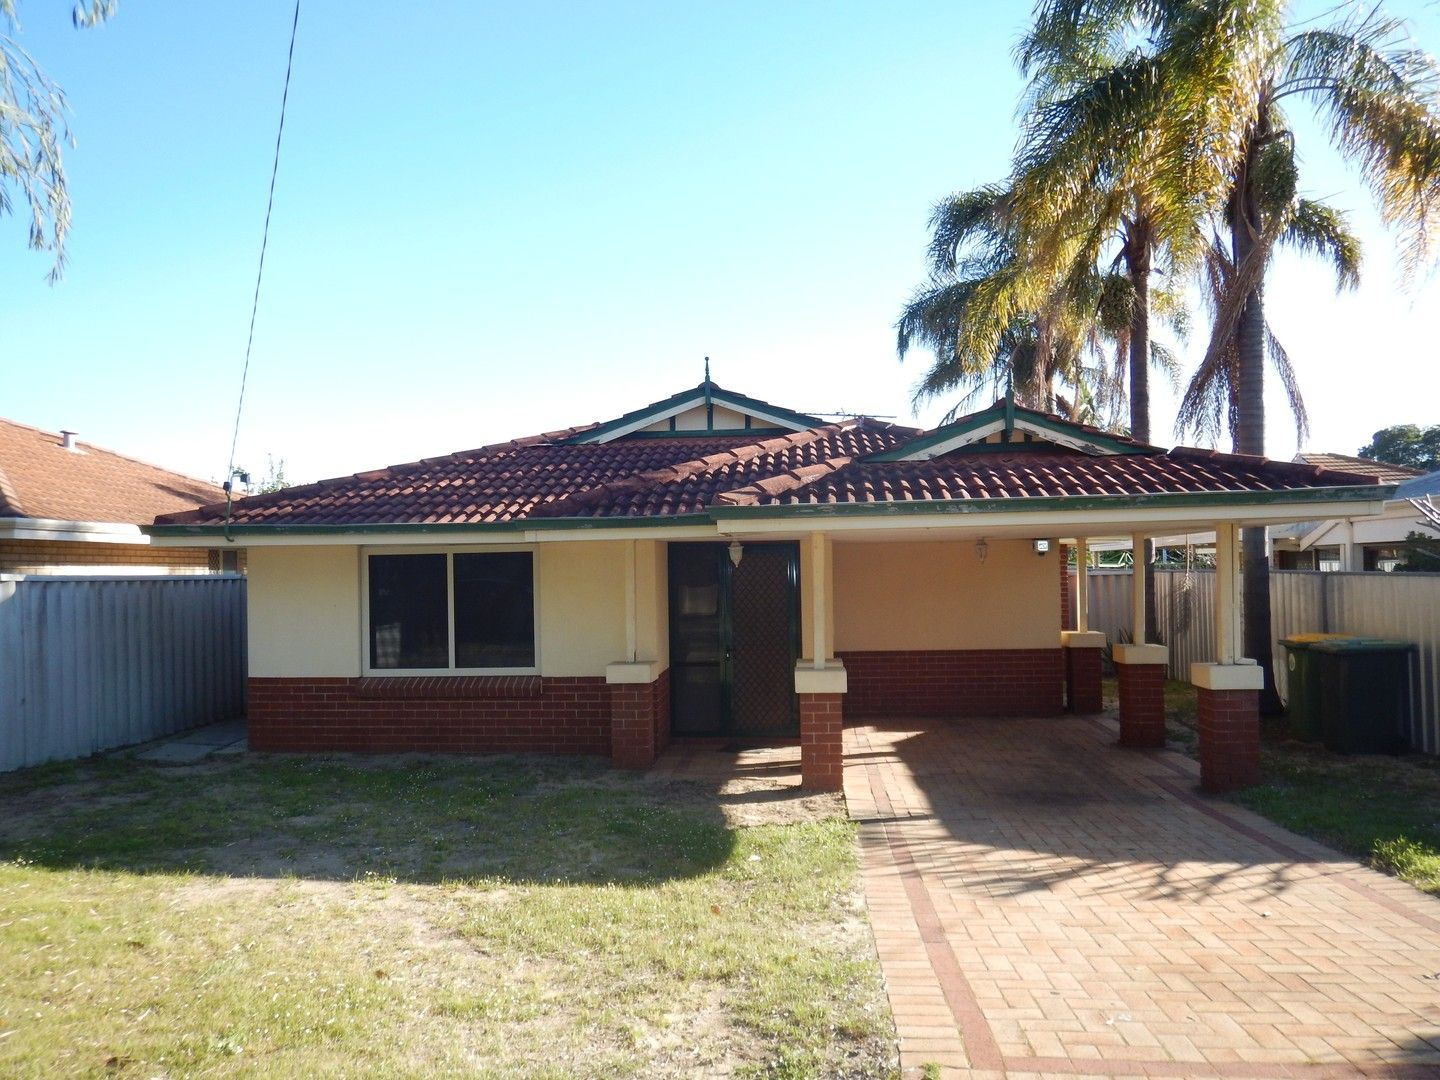 34 McKeon Street  (APPROVED APPLICATION), Redcliffe WA 6104, Image 0